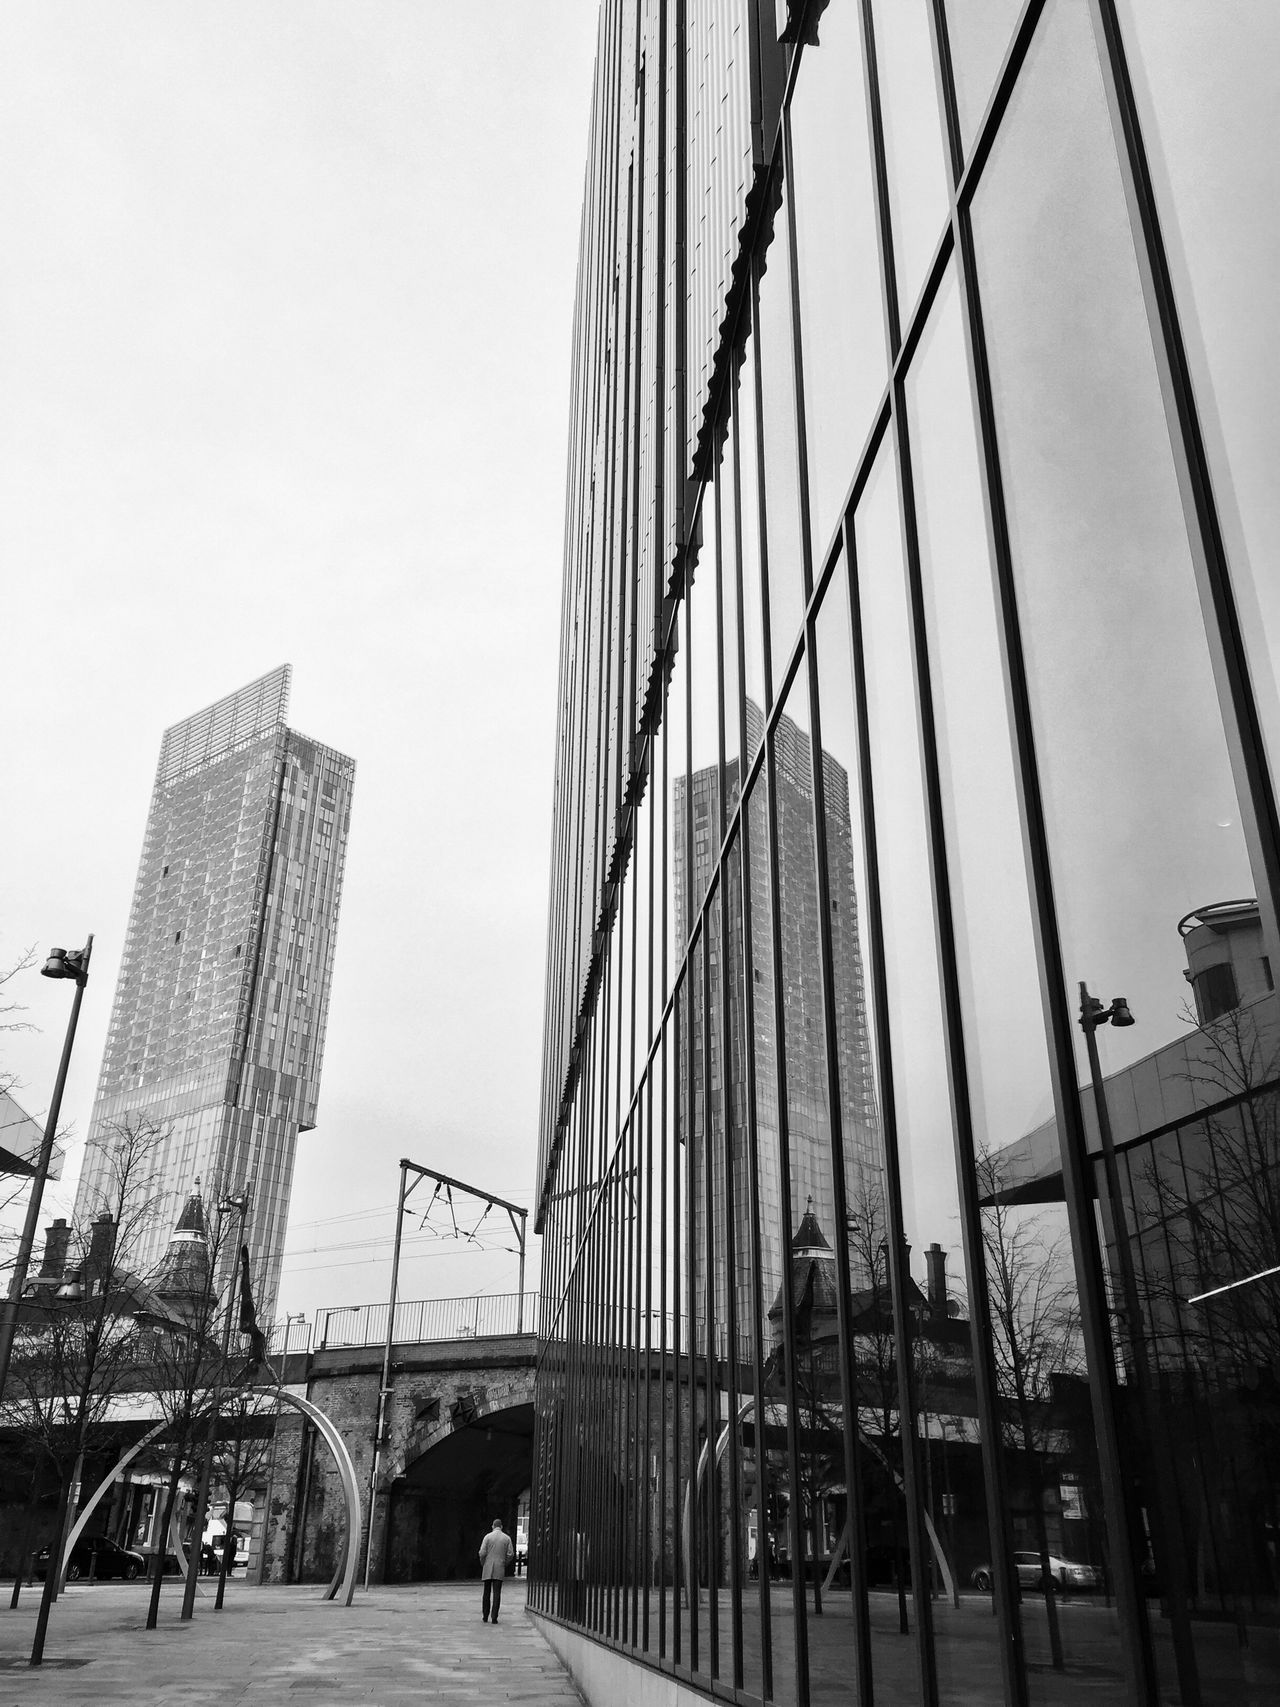 Architectural reflections in the city. Chance Encounters Built Structure Architecture Sky Building Exterior Clear Sky City BeethamTower Getty X EyeEm City Architecture Building Reflections Architecture Cityscape Manchester Outdoors Travel Destinations Real People Men Skyscraper Day People Eye4photography  Streetphoto_bw EyeEm Masterclass Reflections